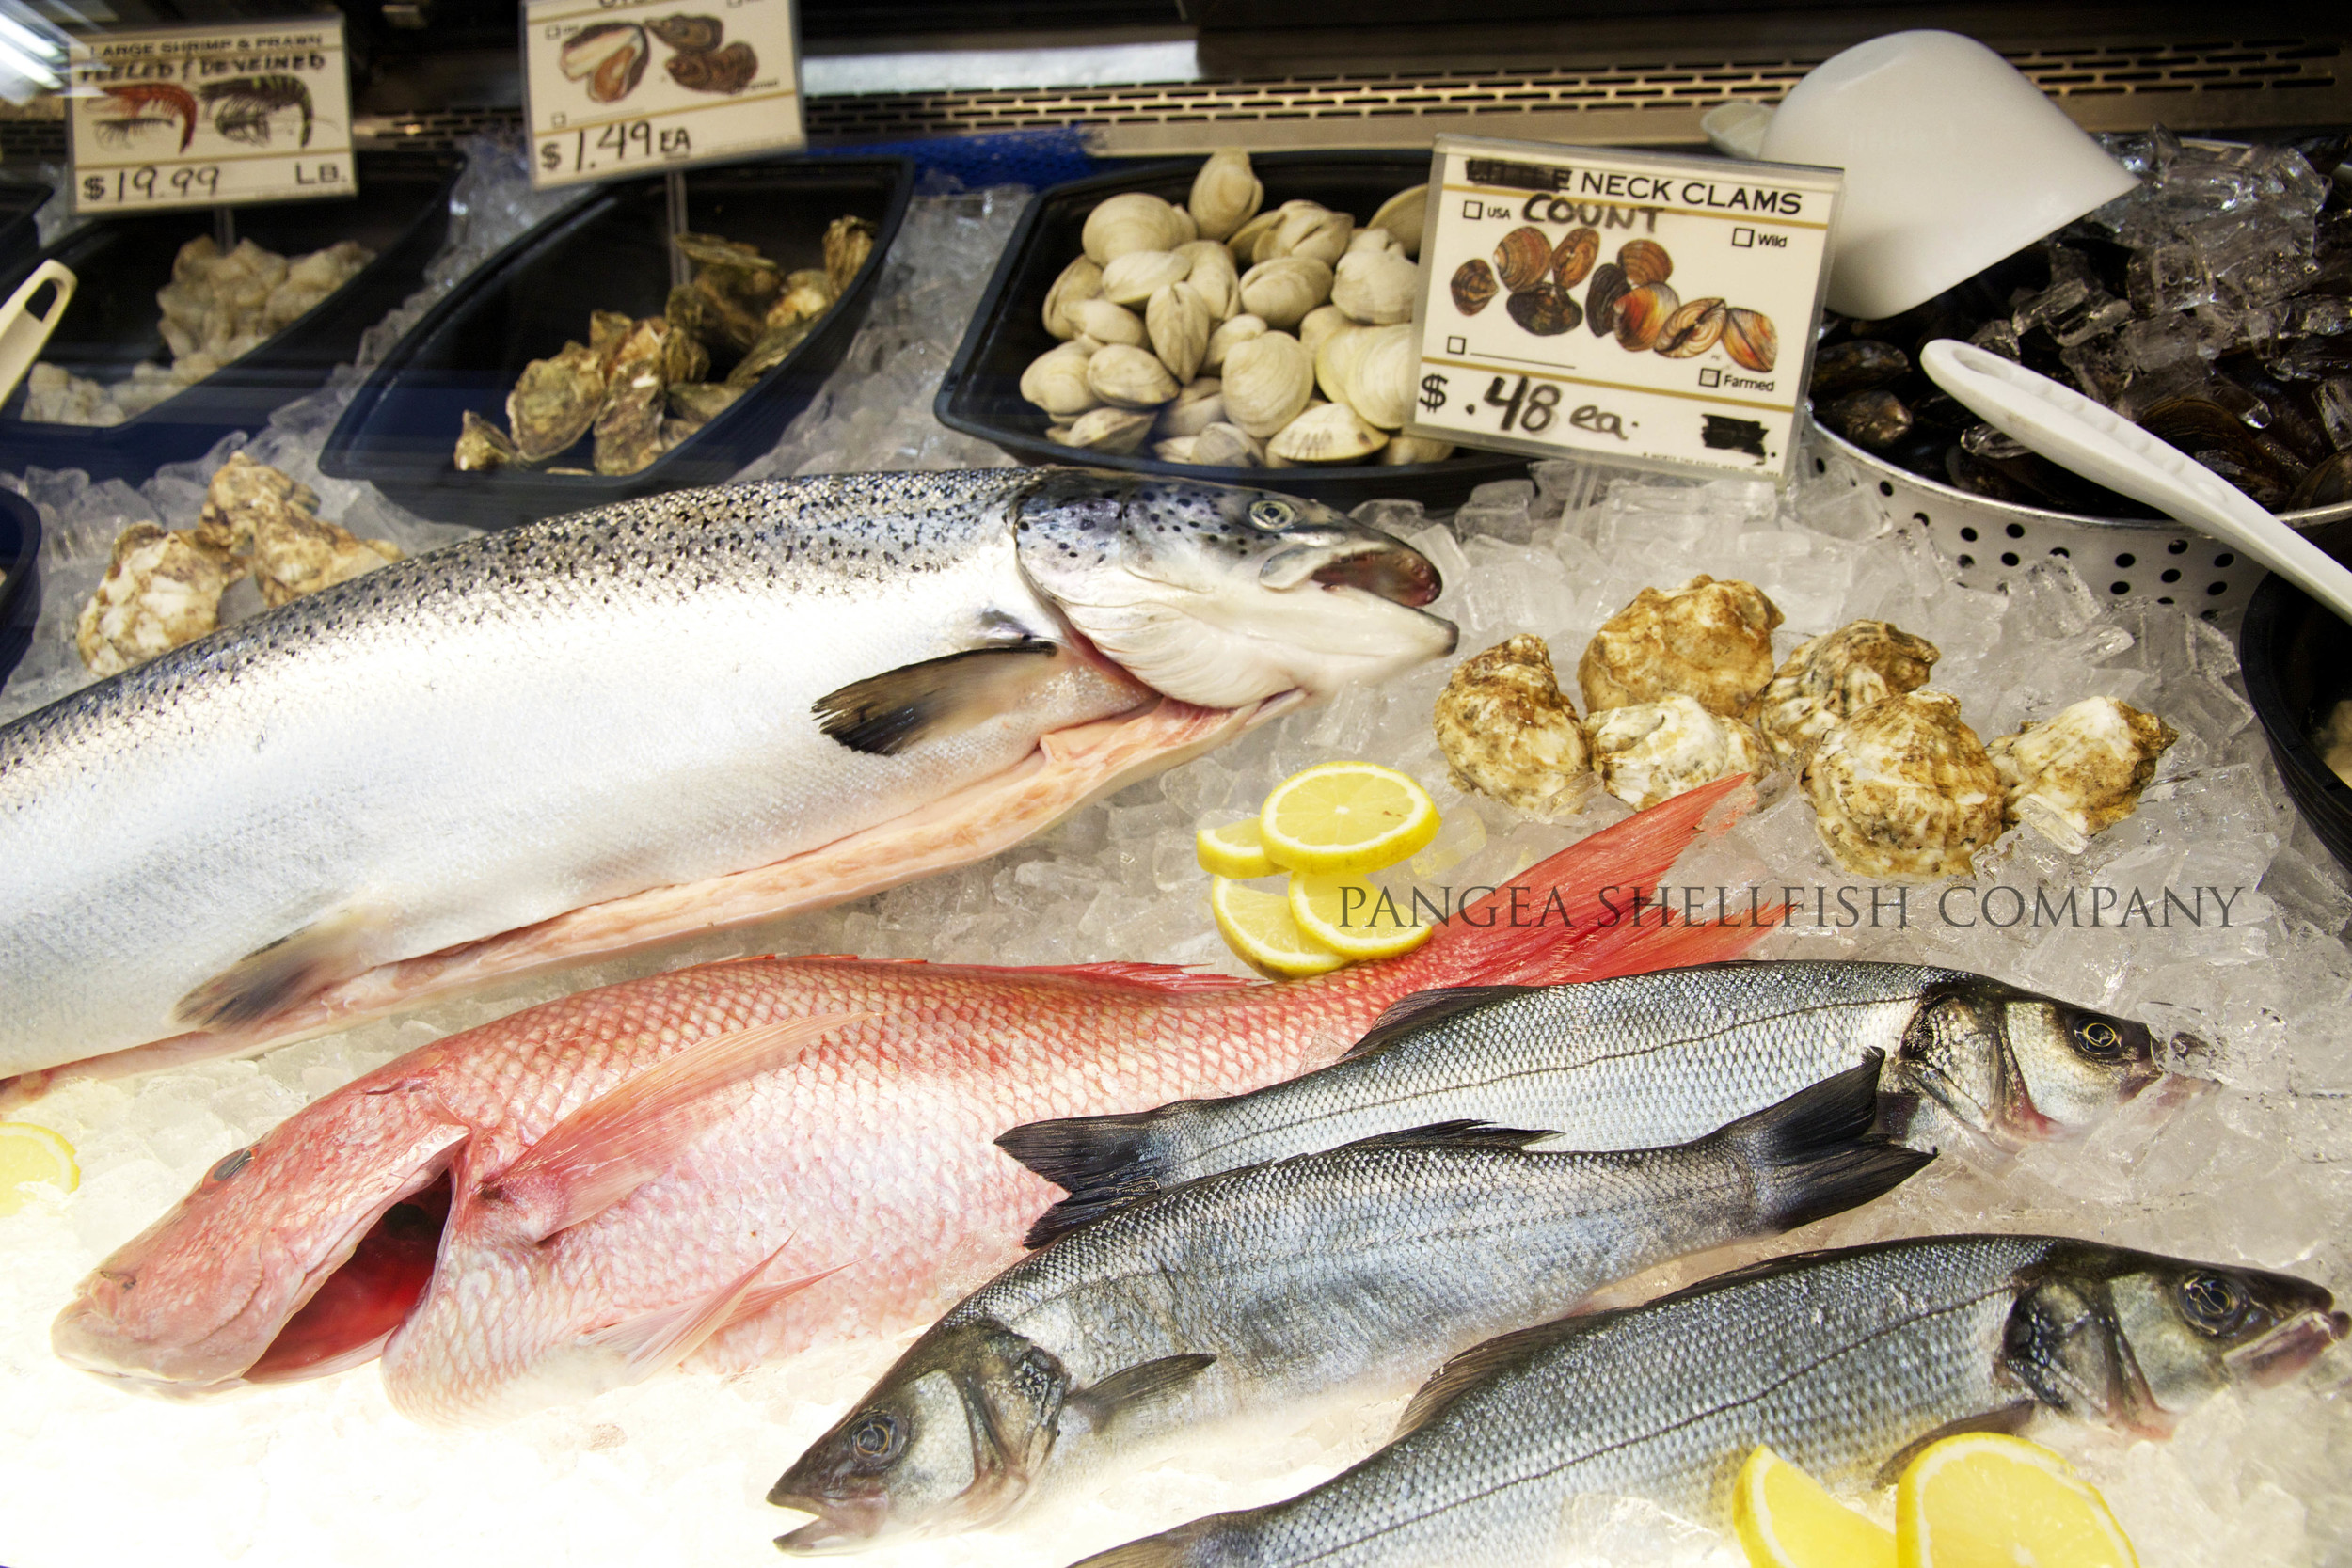 Fresh fish and an assortment of seafood on display in the Earth & Sea shop.